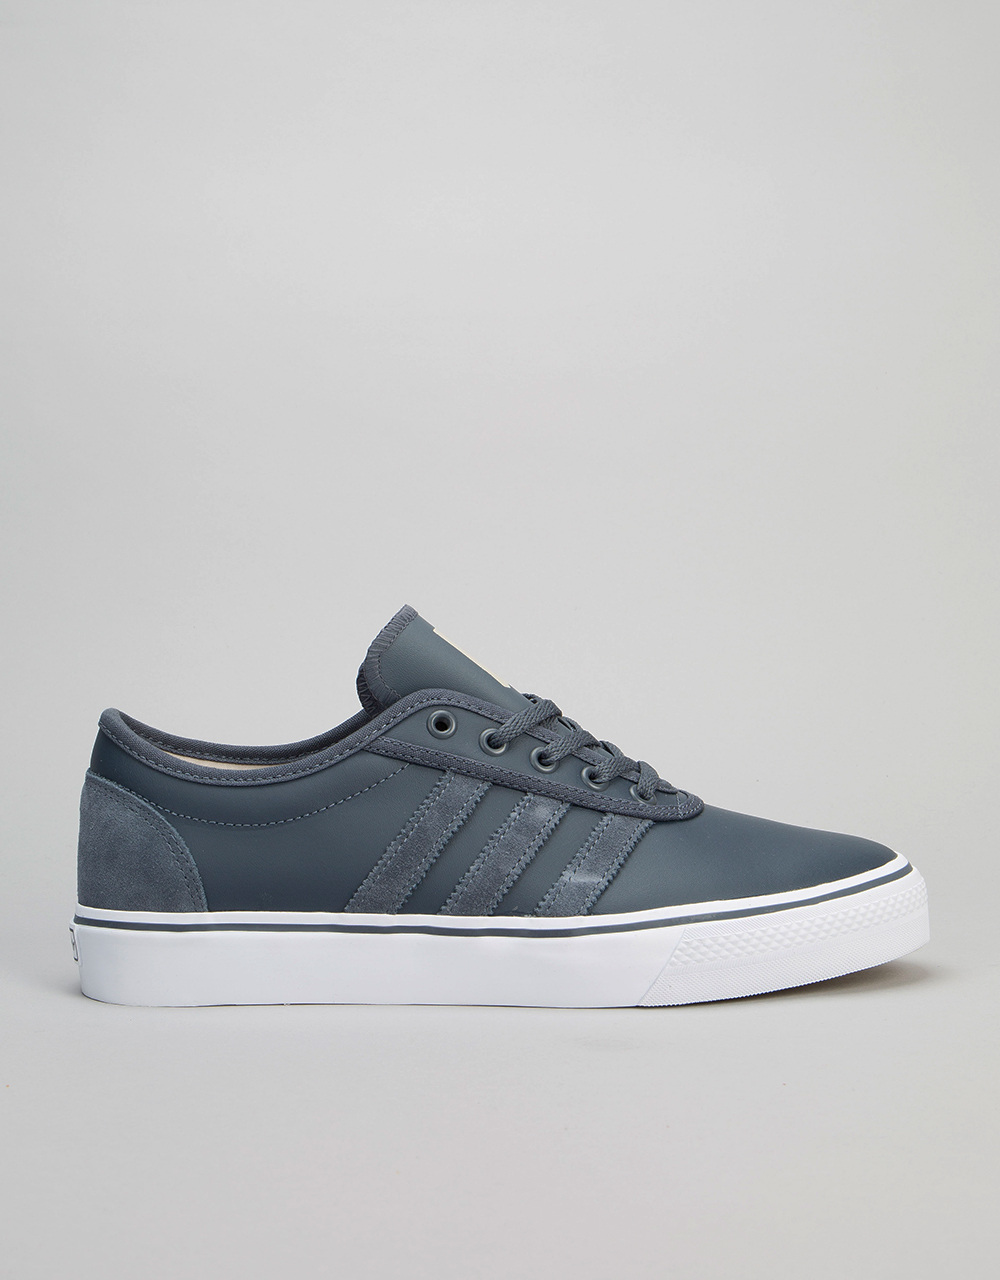 quality design aa96a 960c7 Adidas Adi-Ease Skate Shoes - Utility BlueUtility BlueClear Brown  Sale   Clearance  Cheap Skate Clothing, Footwear  Hardware  Route One